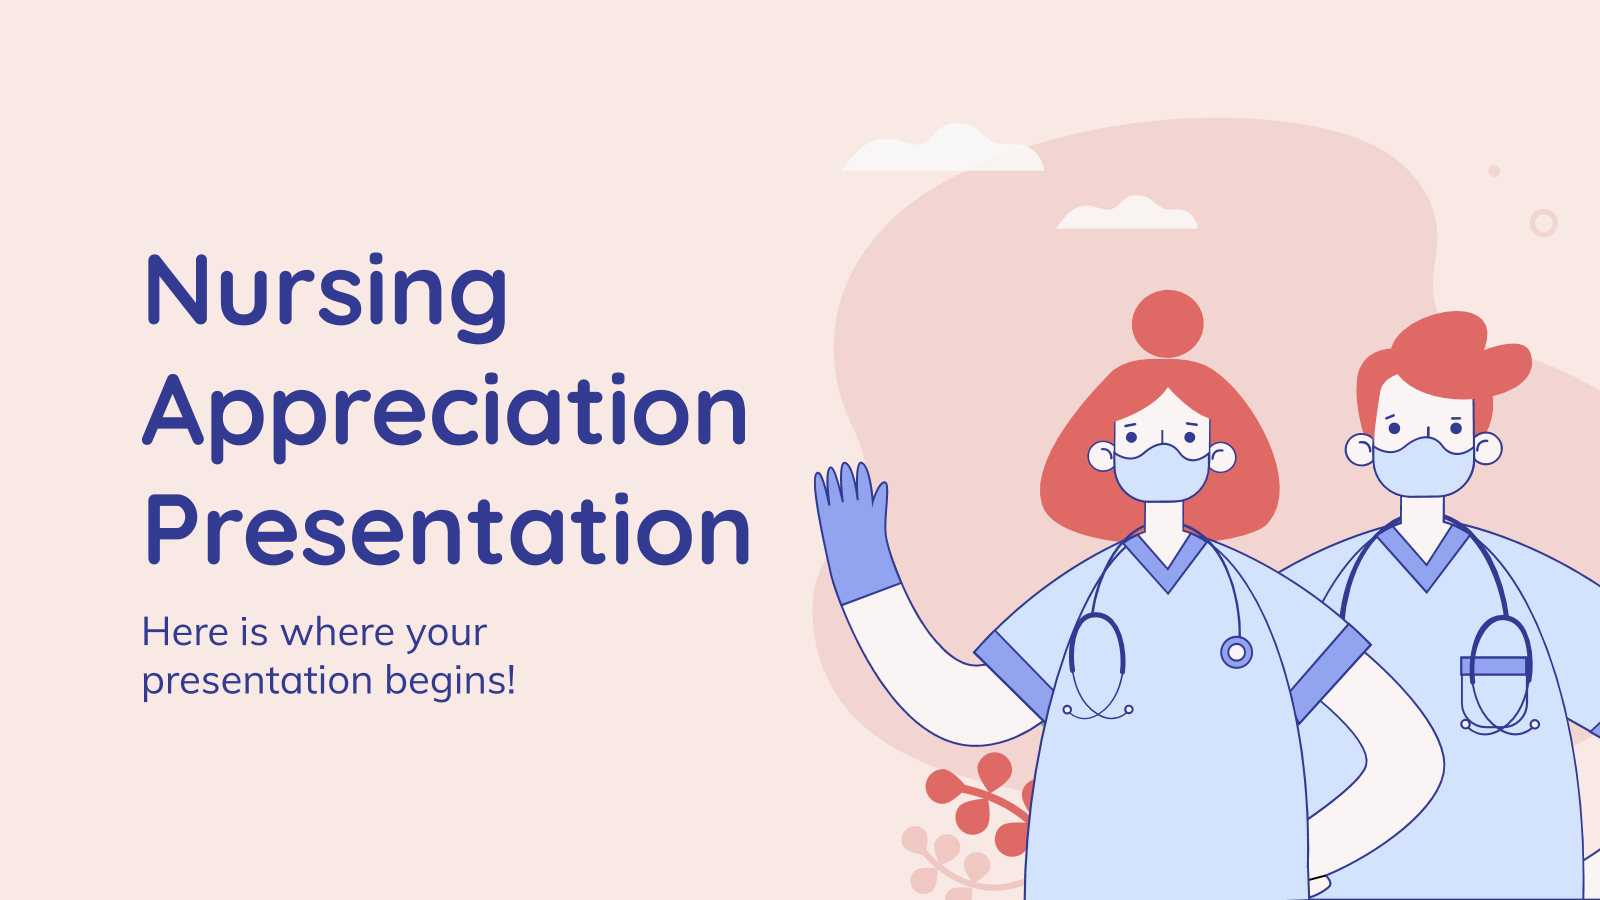 Nursing Appreciation presentation template